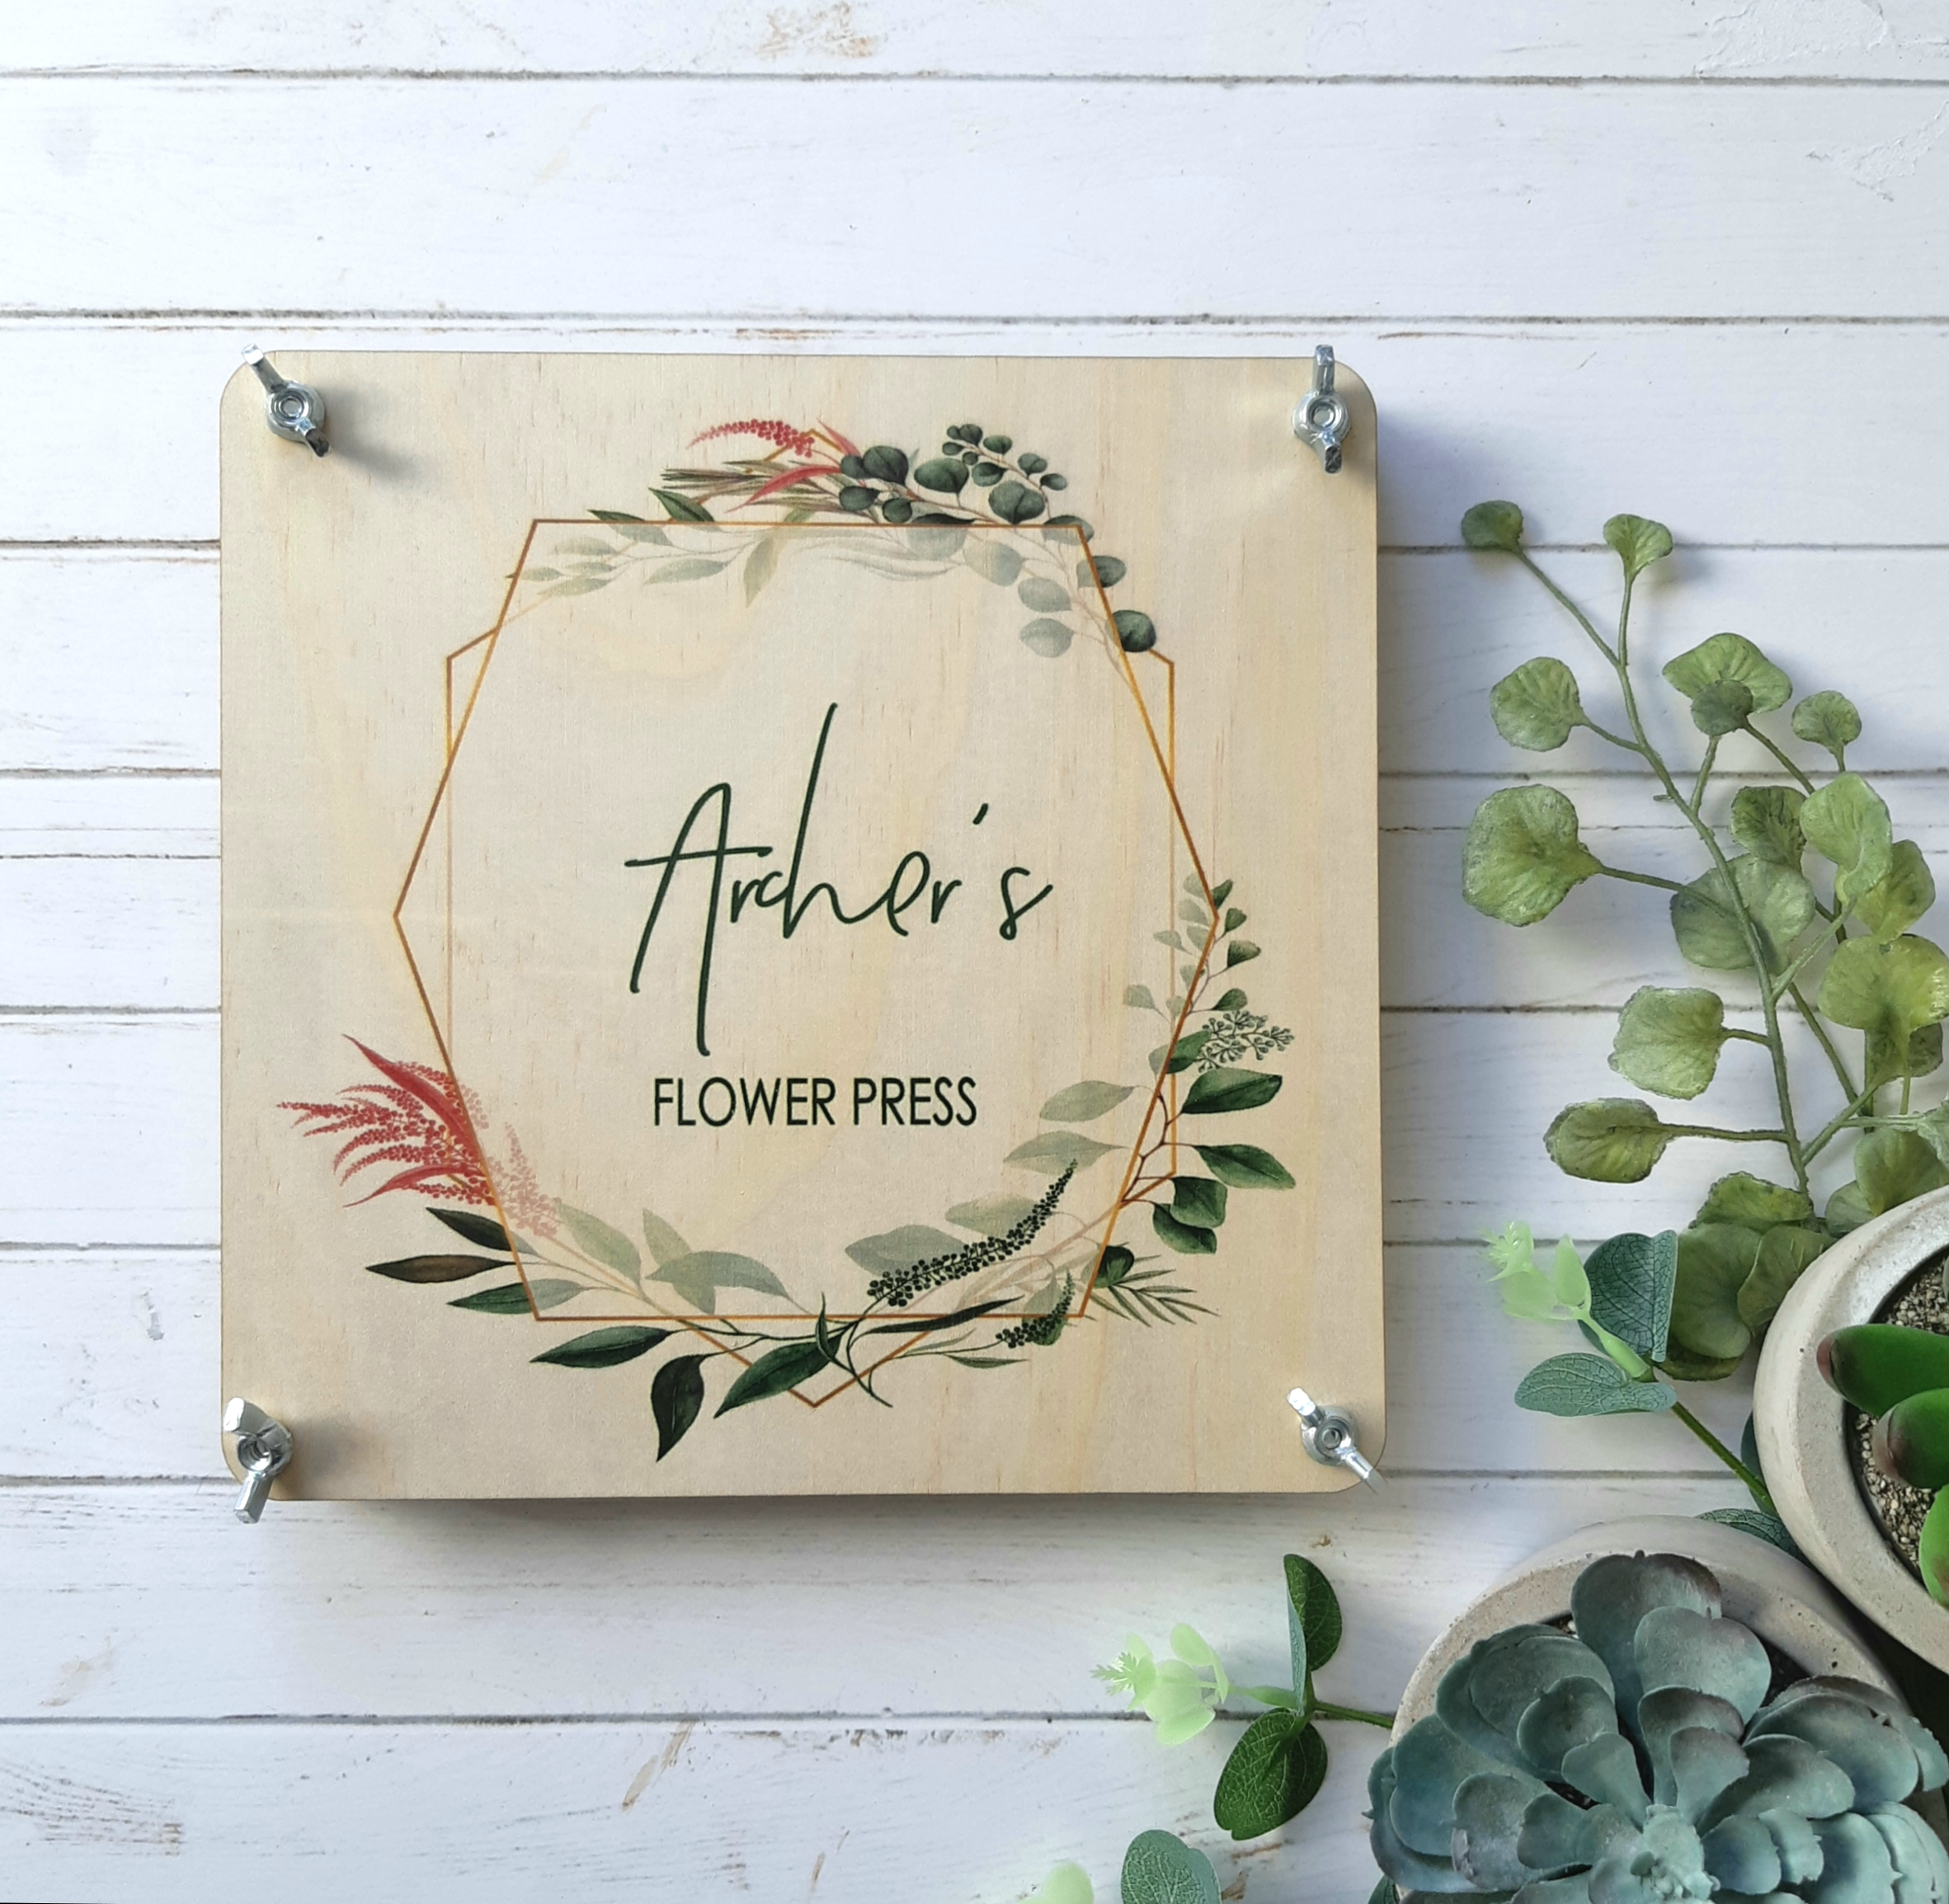 Personalised with your nature lovers name, this flower press will make a treasured keepsake.